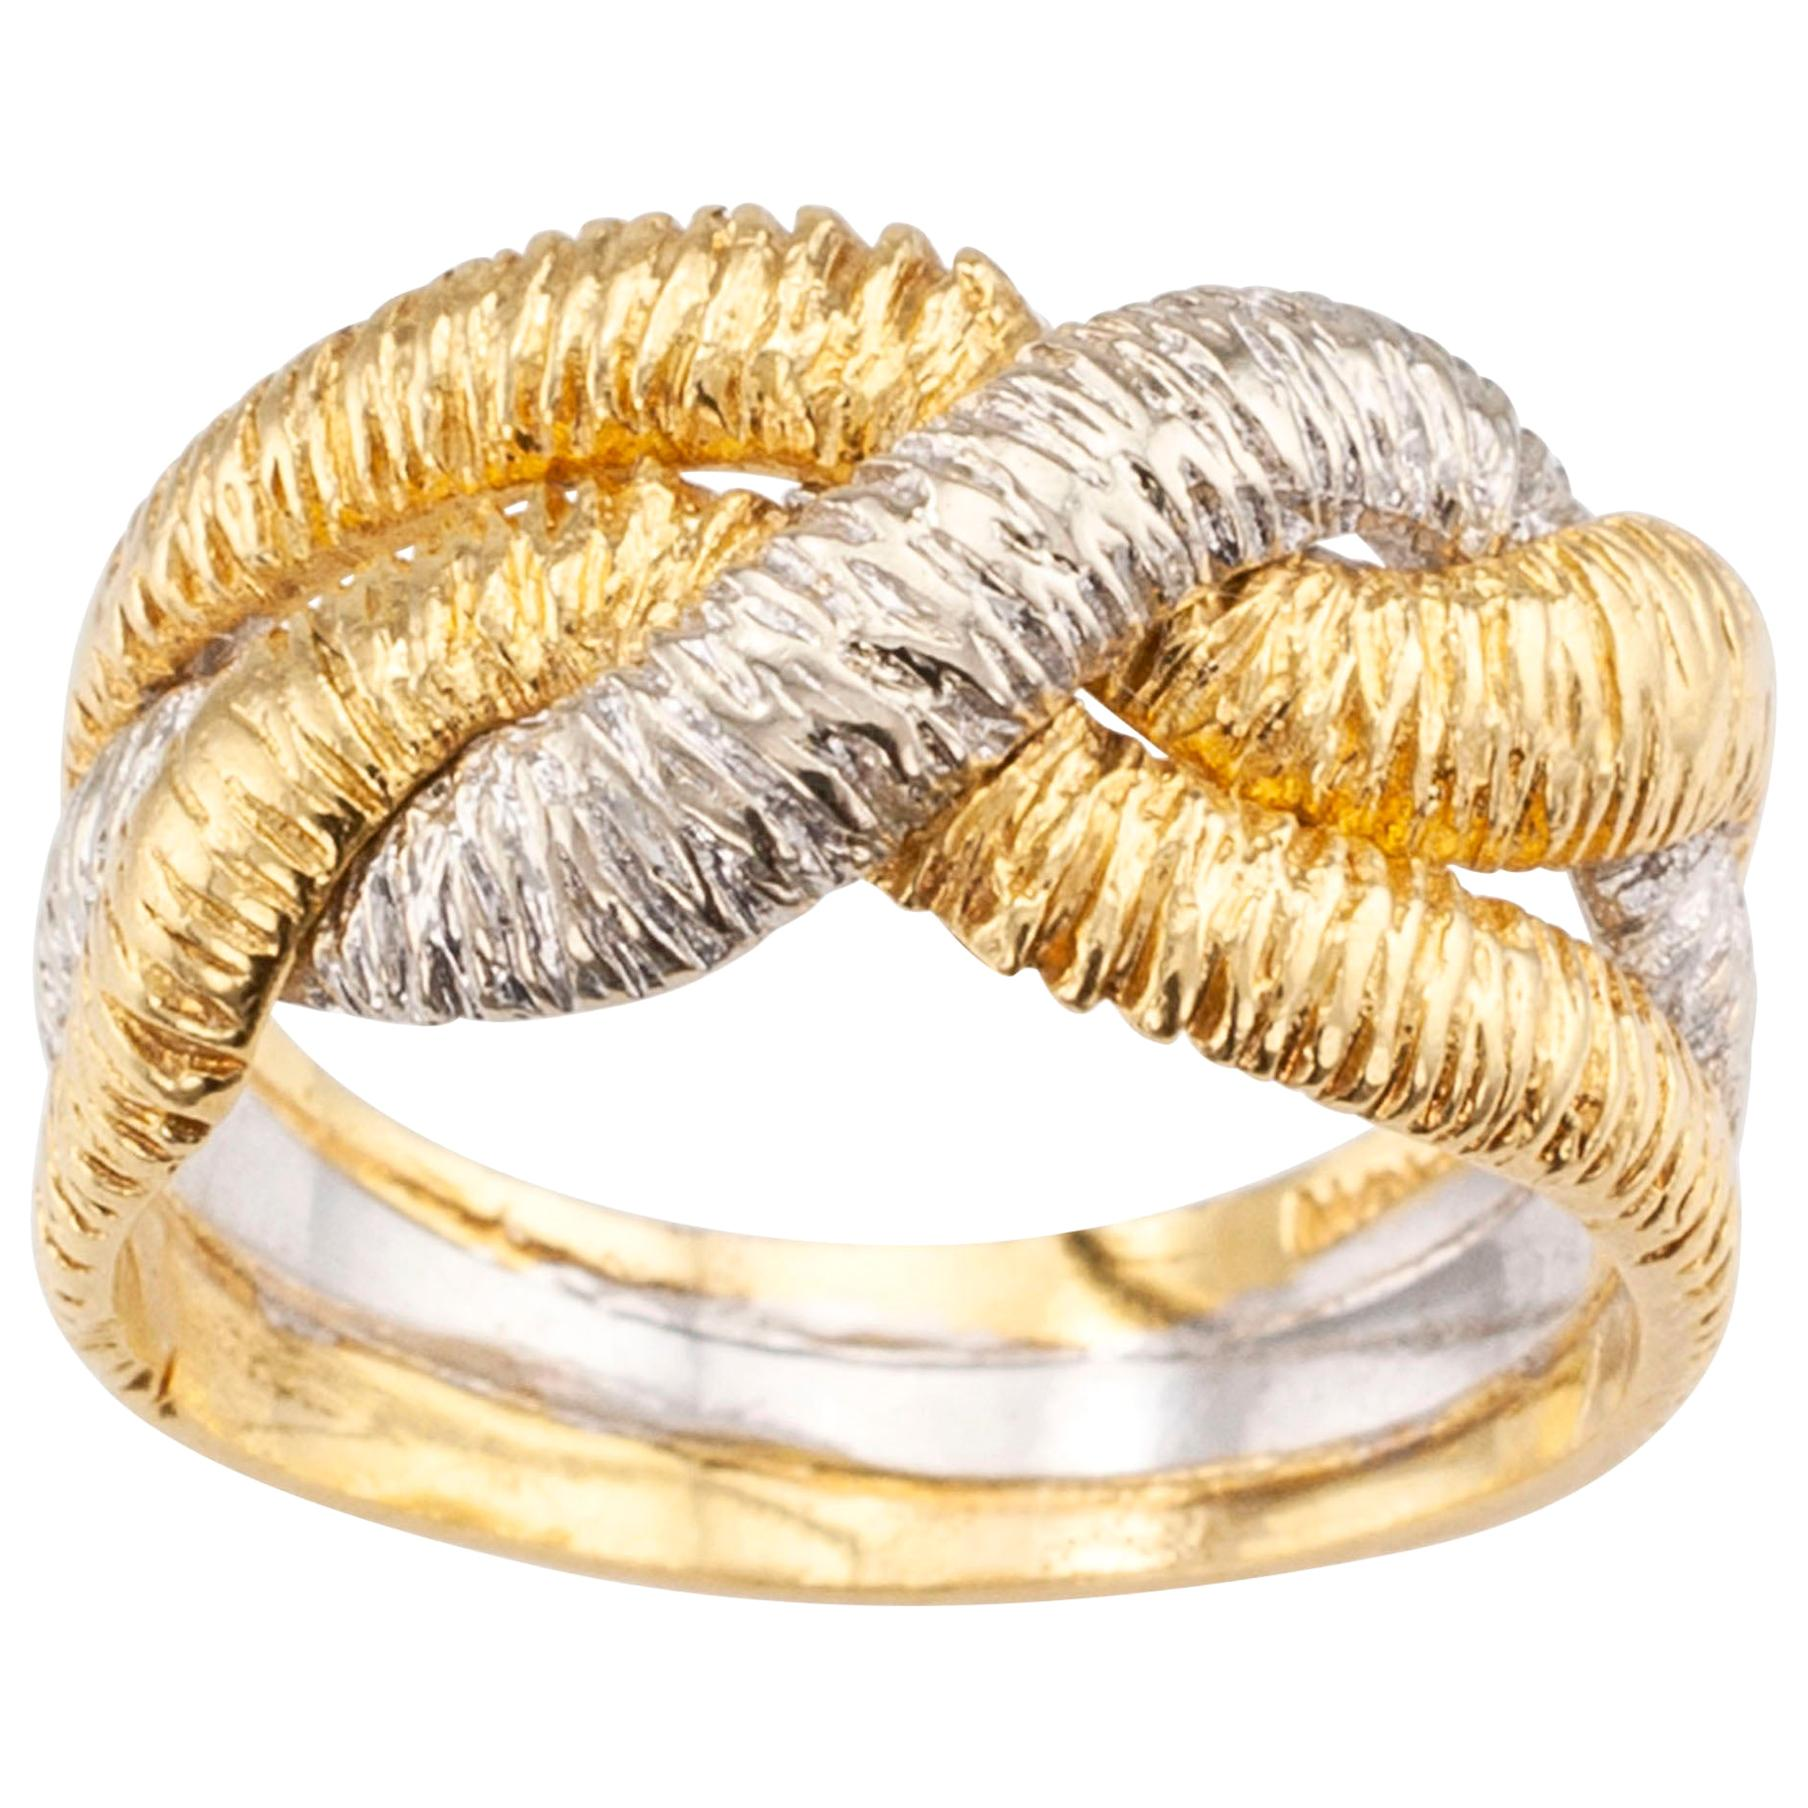 Textured Two-Tone Gold Ring Band